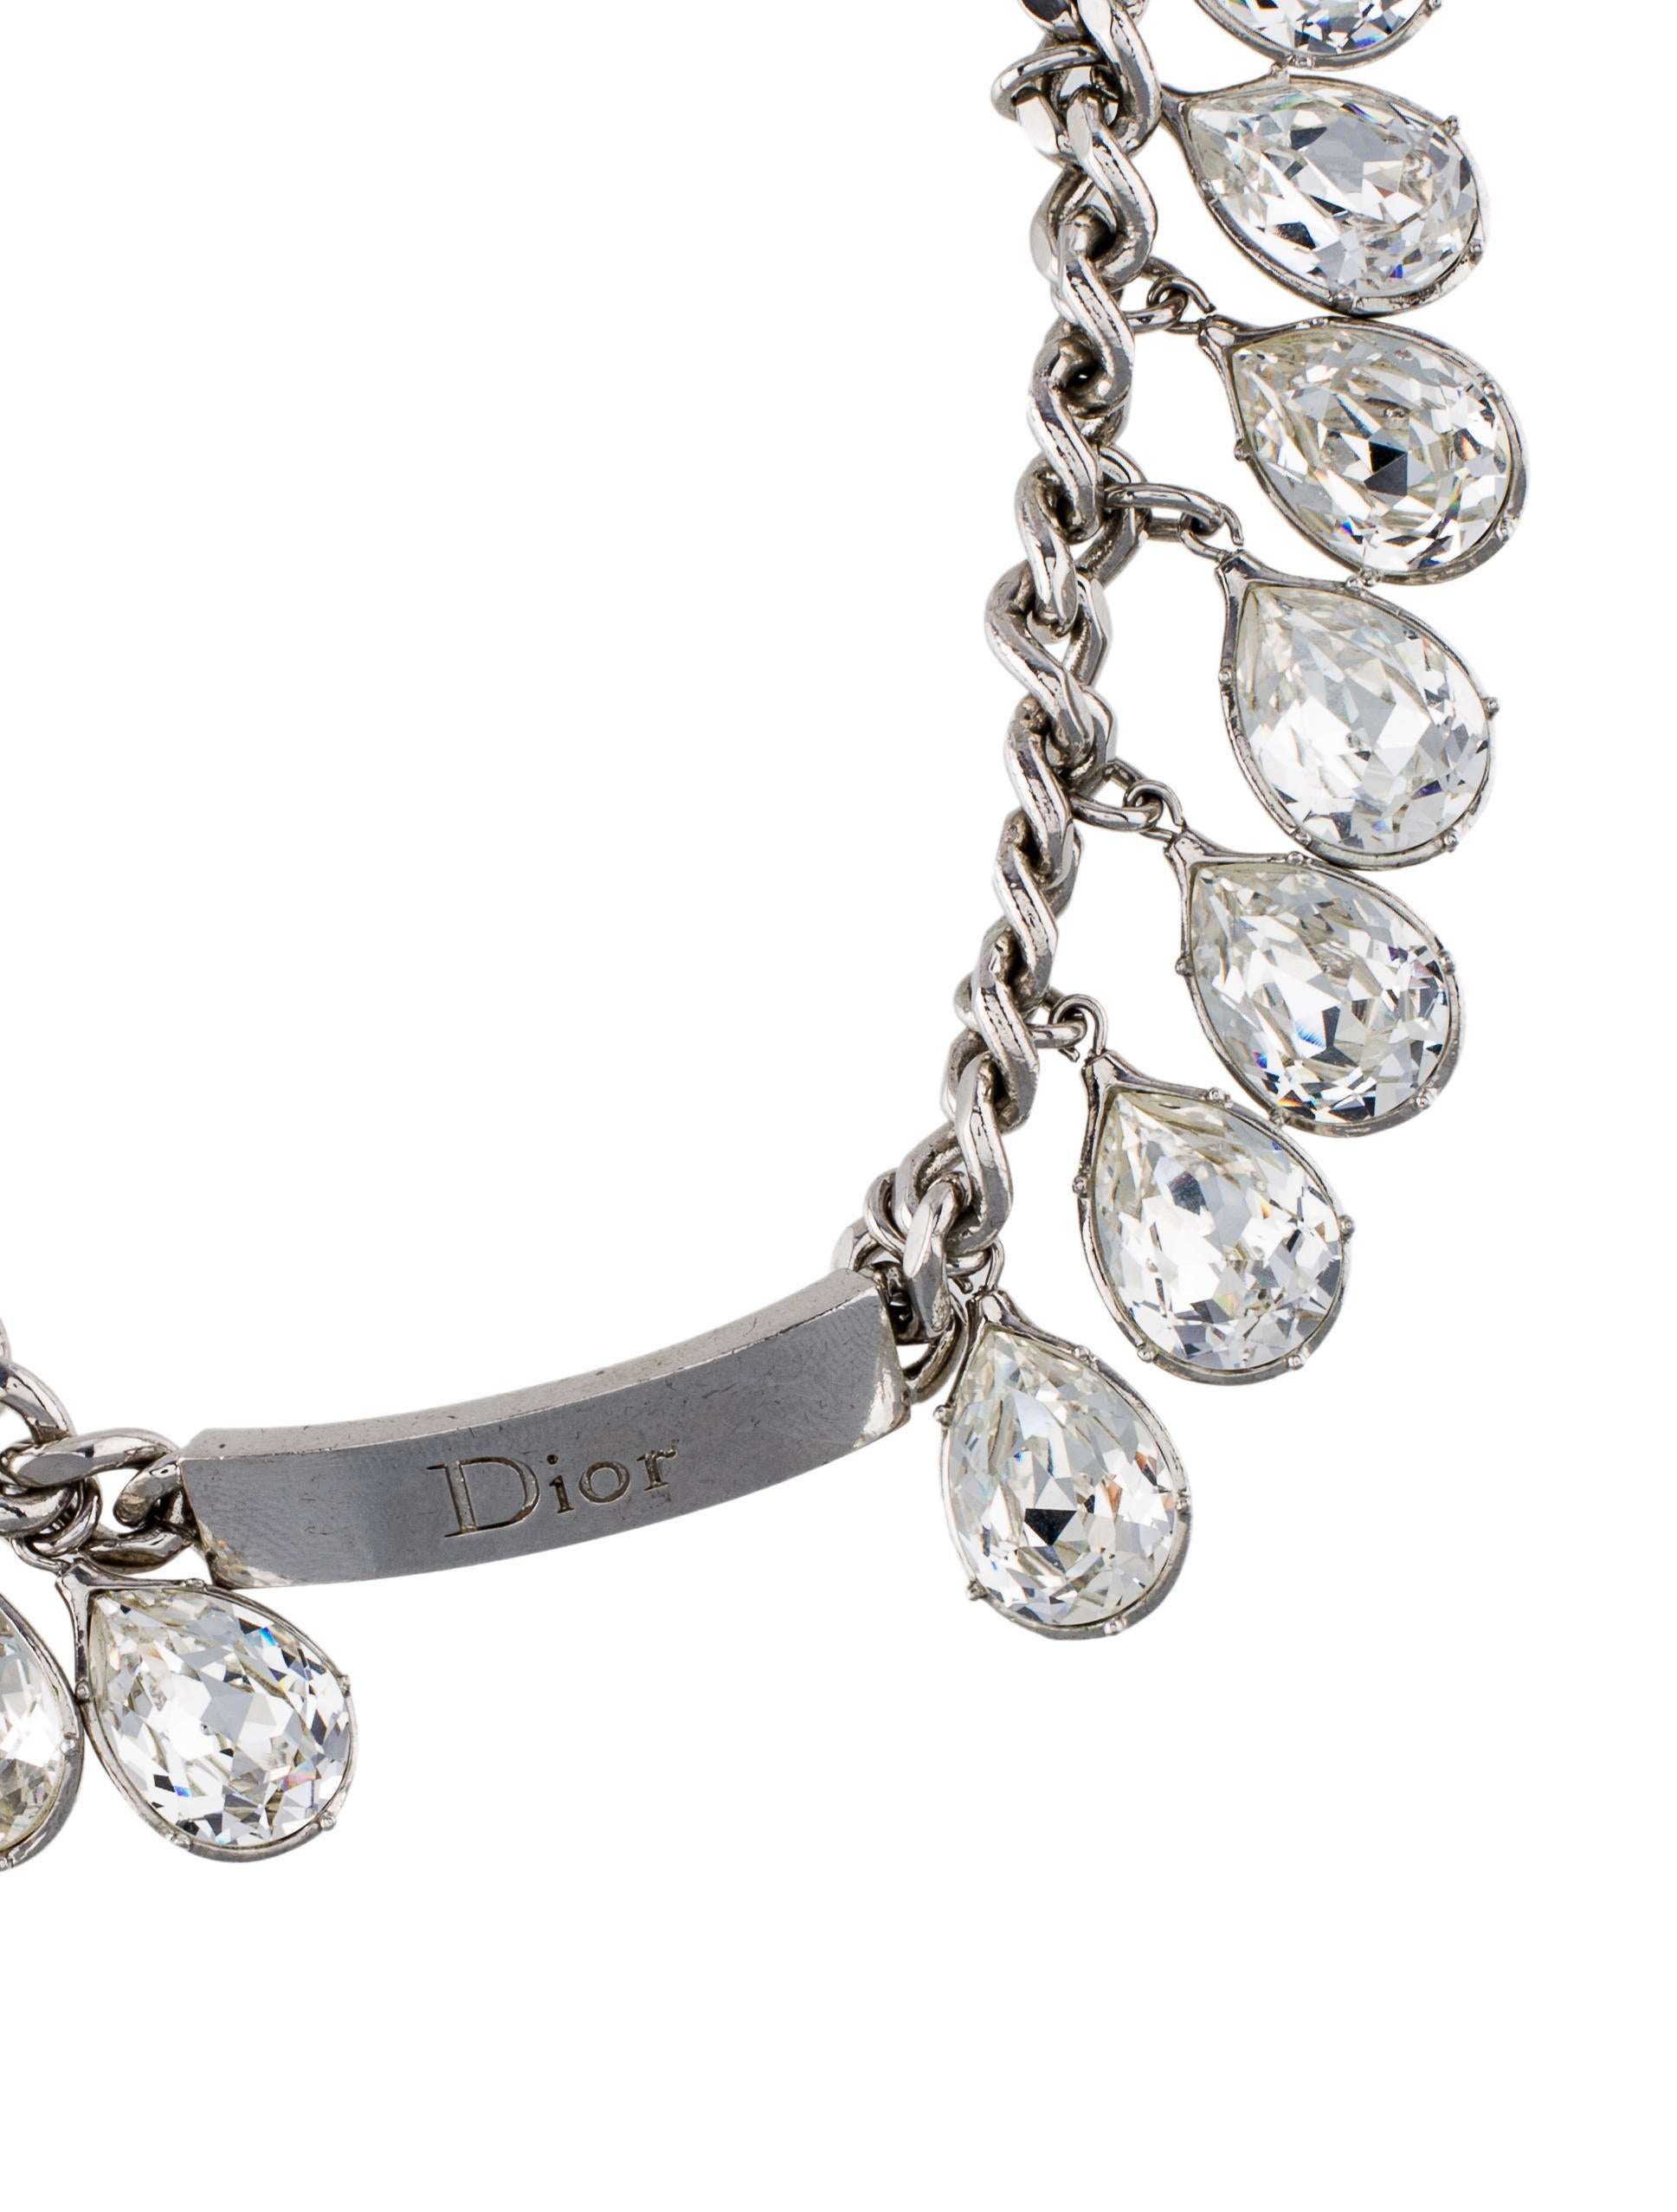 Christian Dior Crystal Necklace Necklaces Chr56048